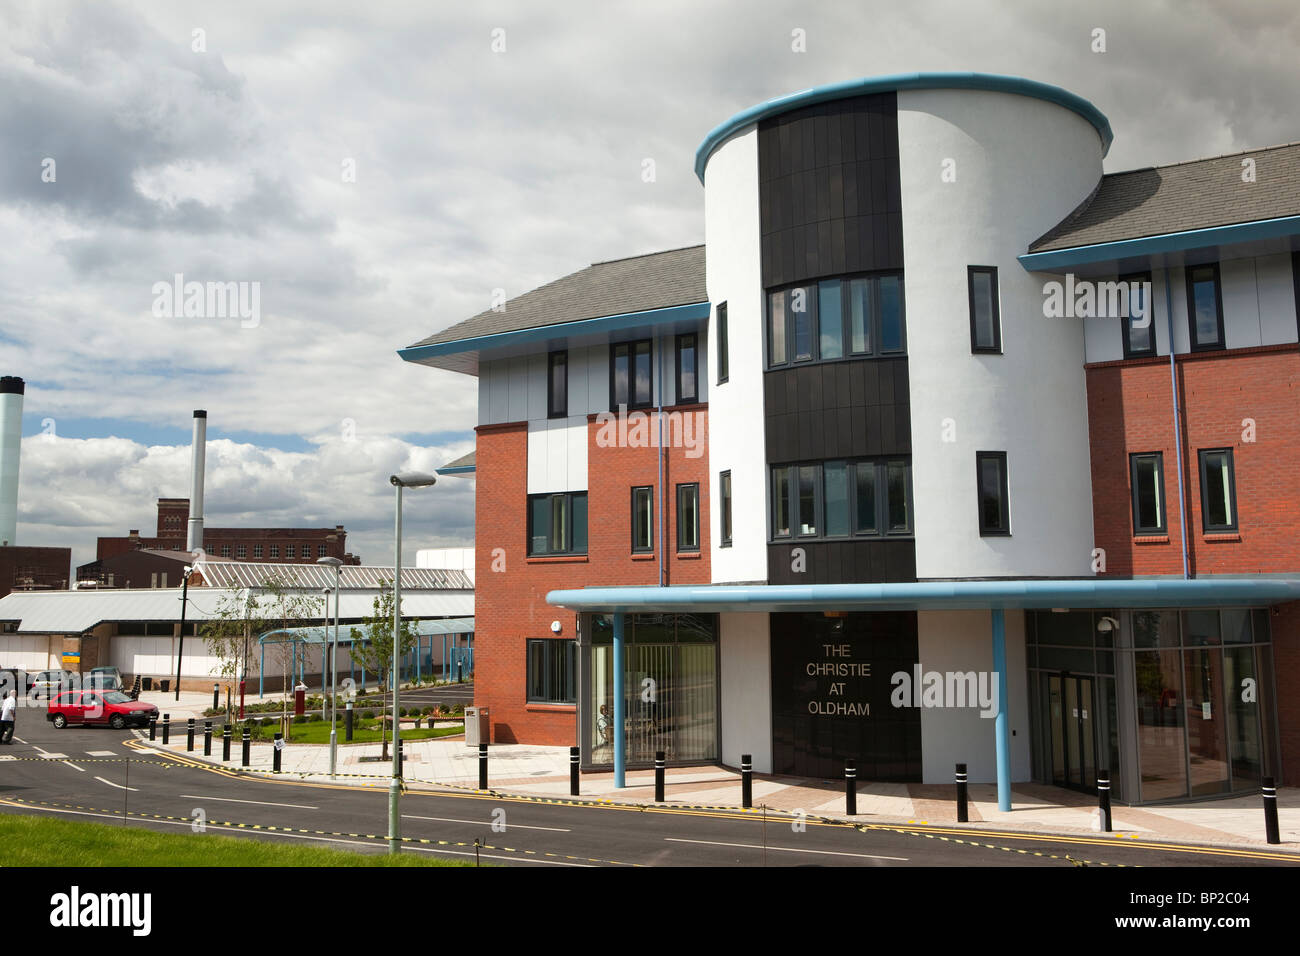 UK, England, Oldham, Royal Hospital, new Christie Radiotherapy cancer treatment centre - Stock Image